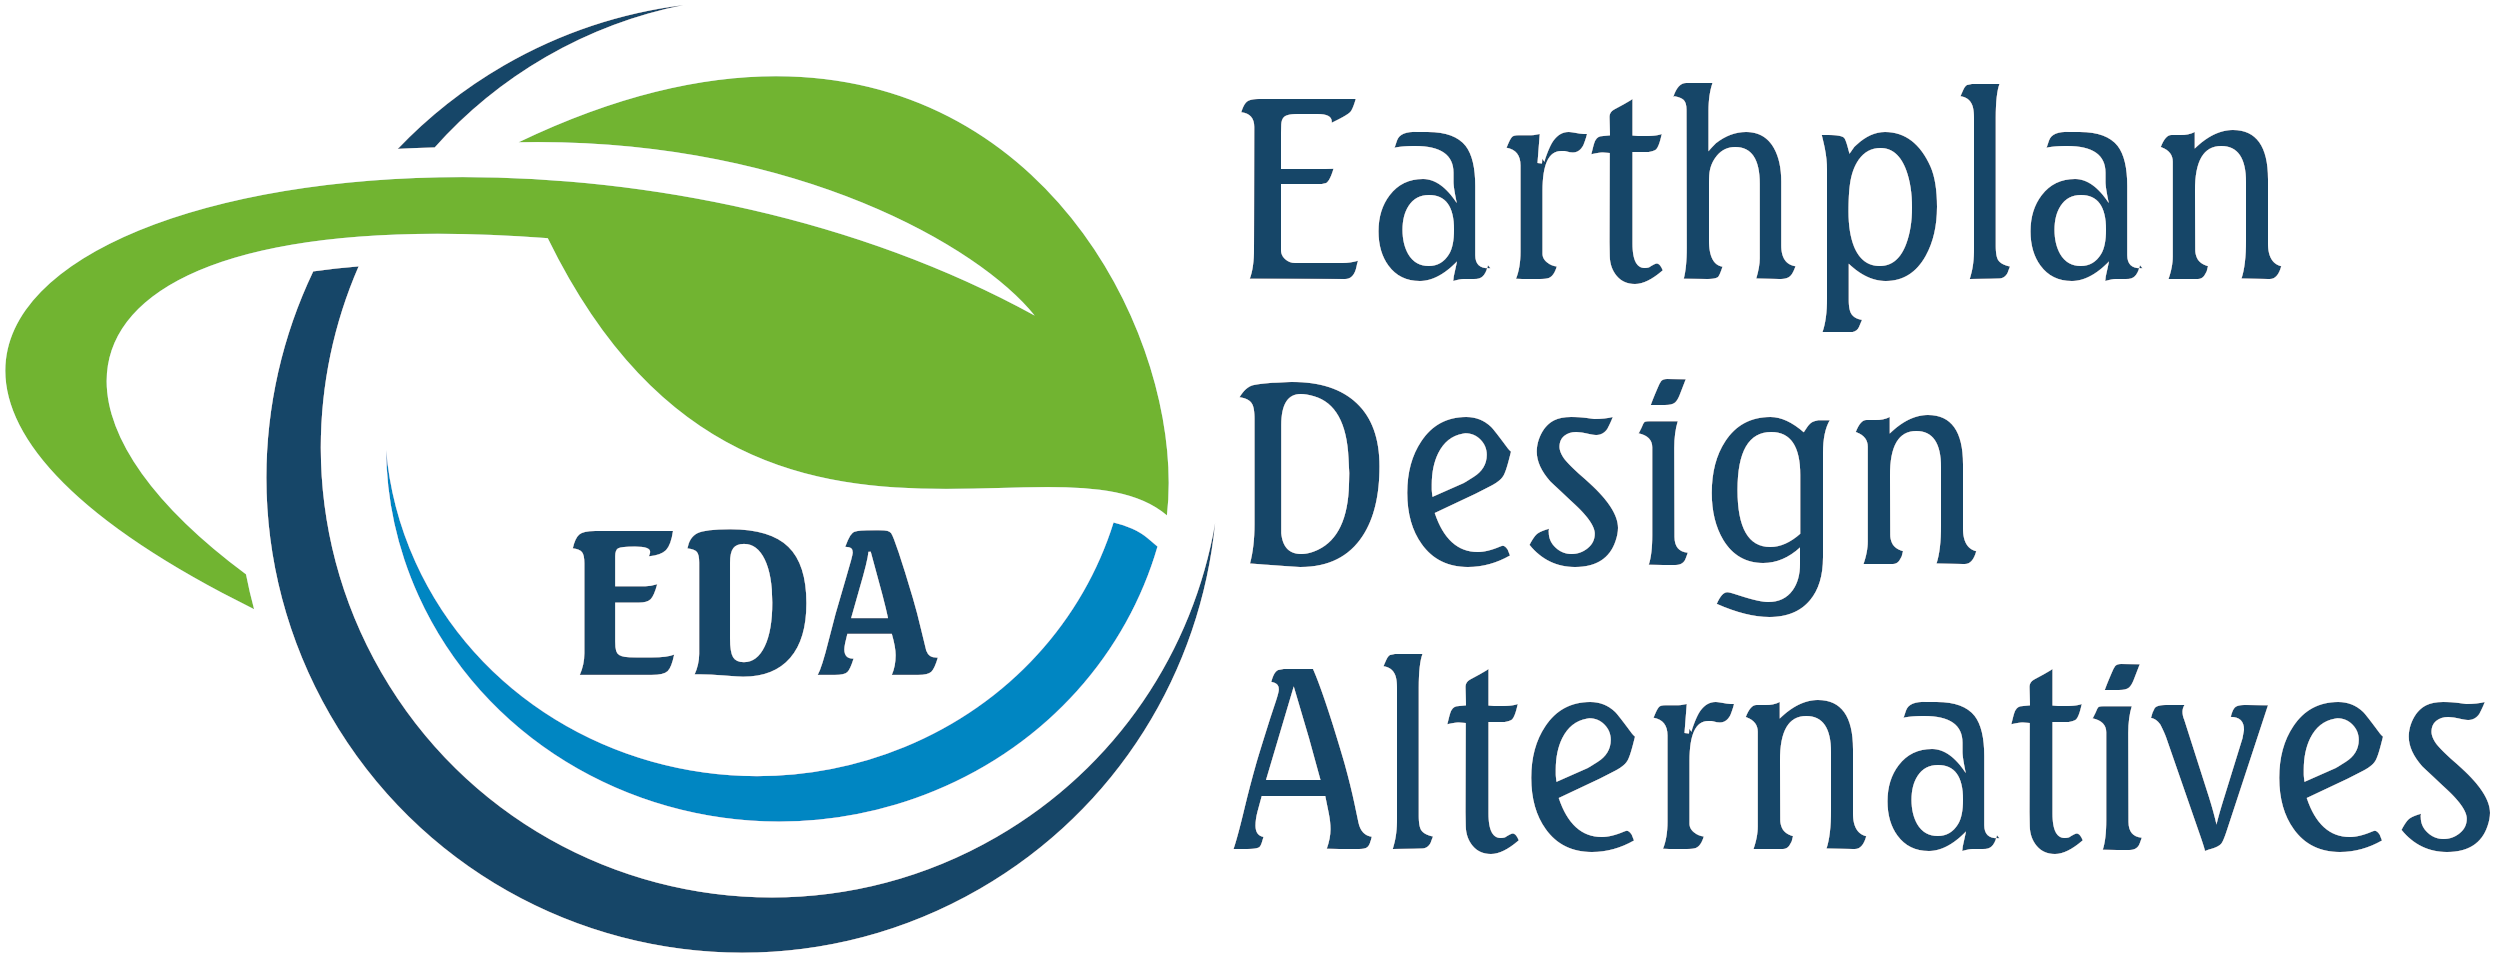 EDA – Earthplan Design Alternatives, PA